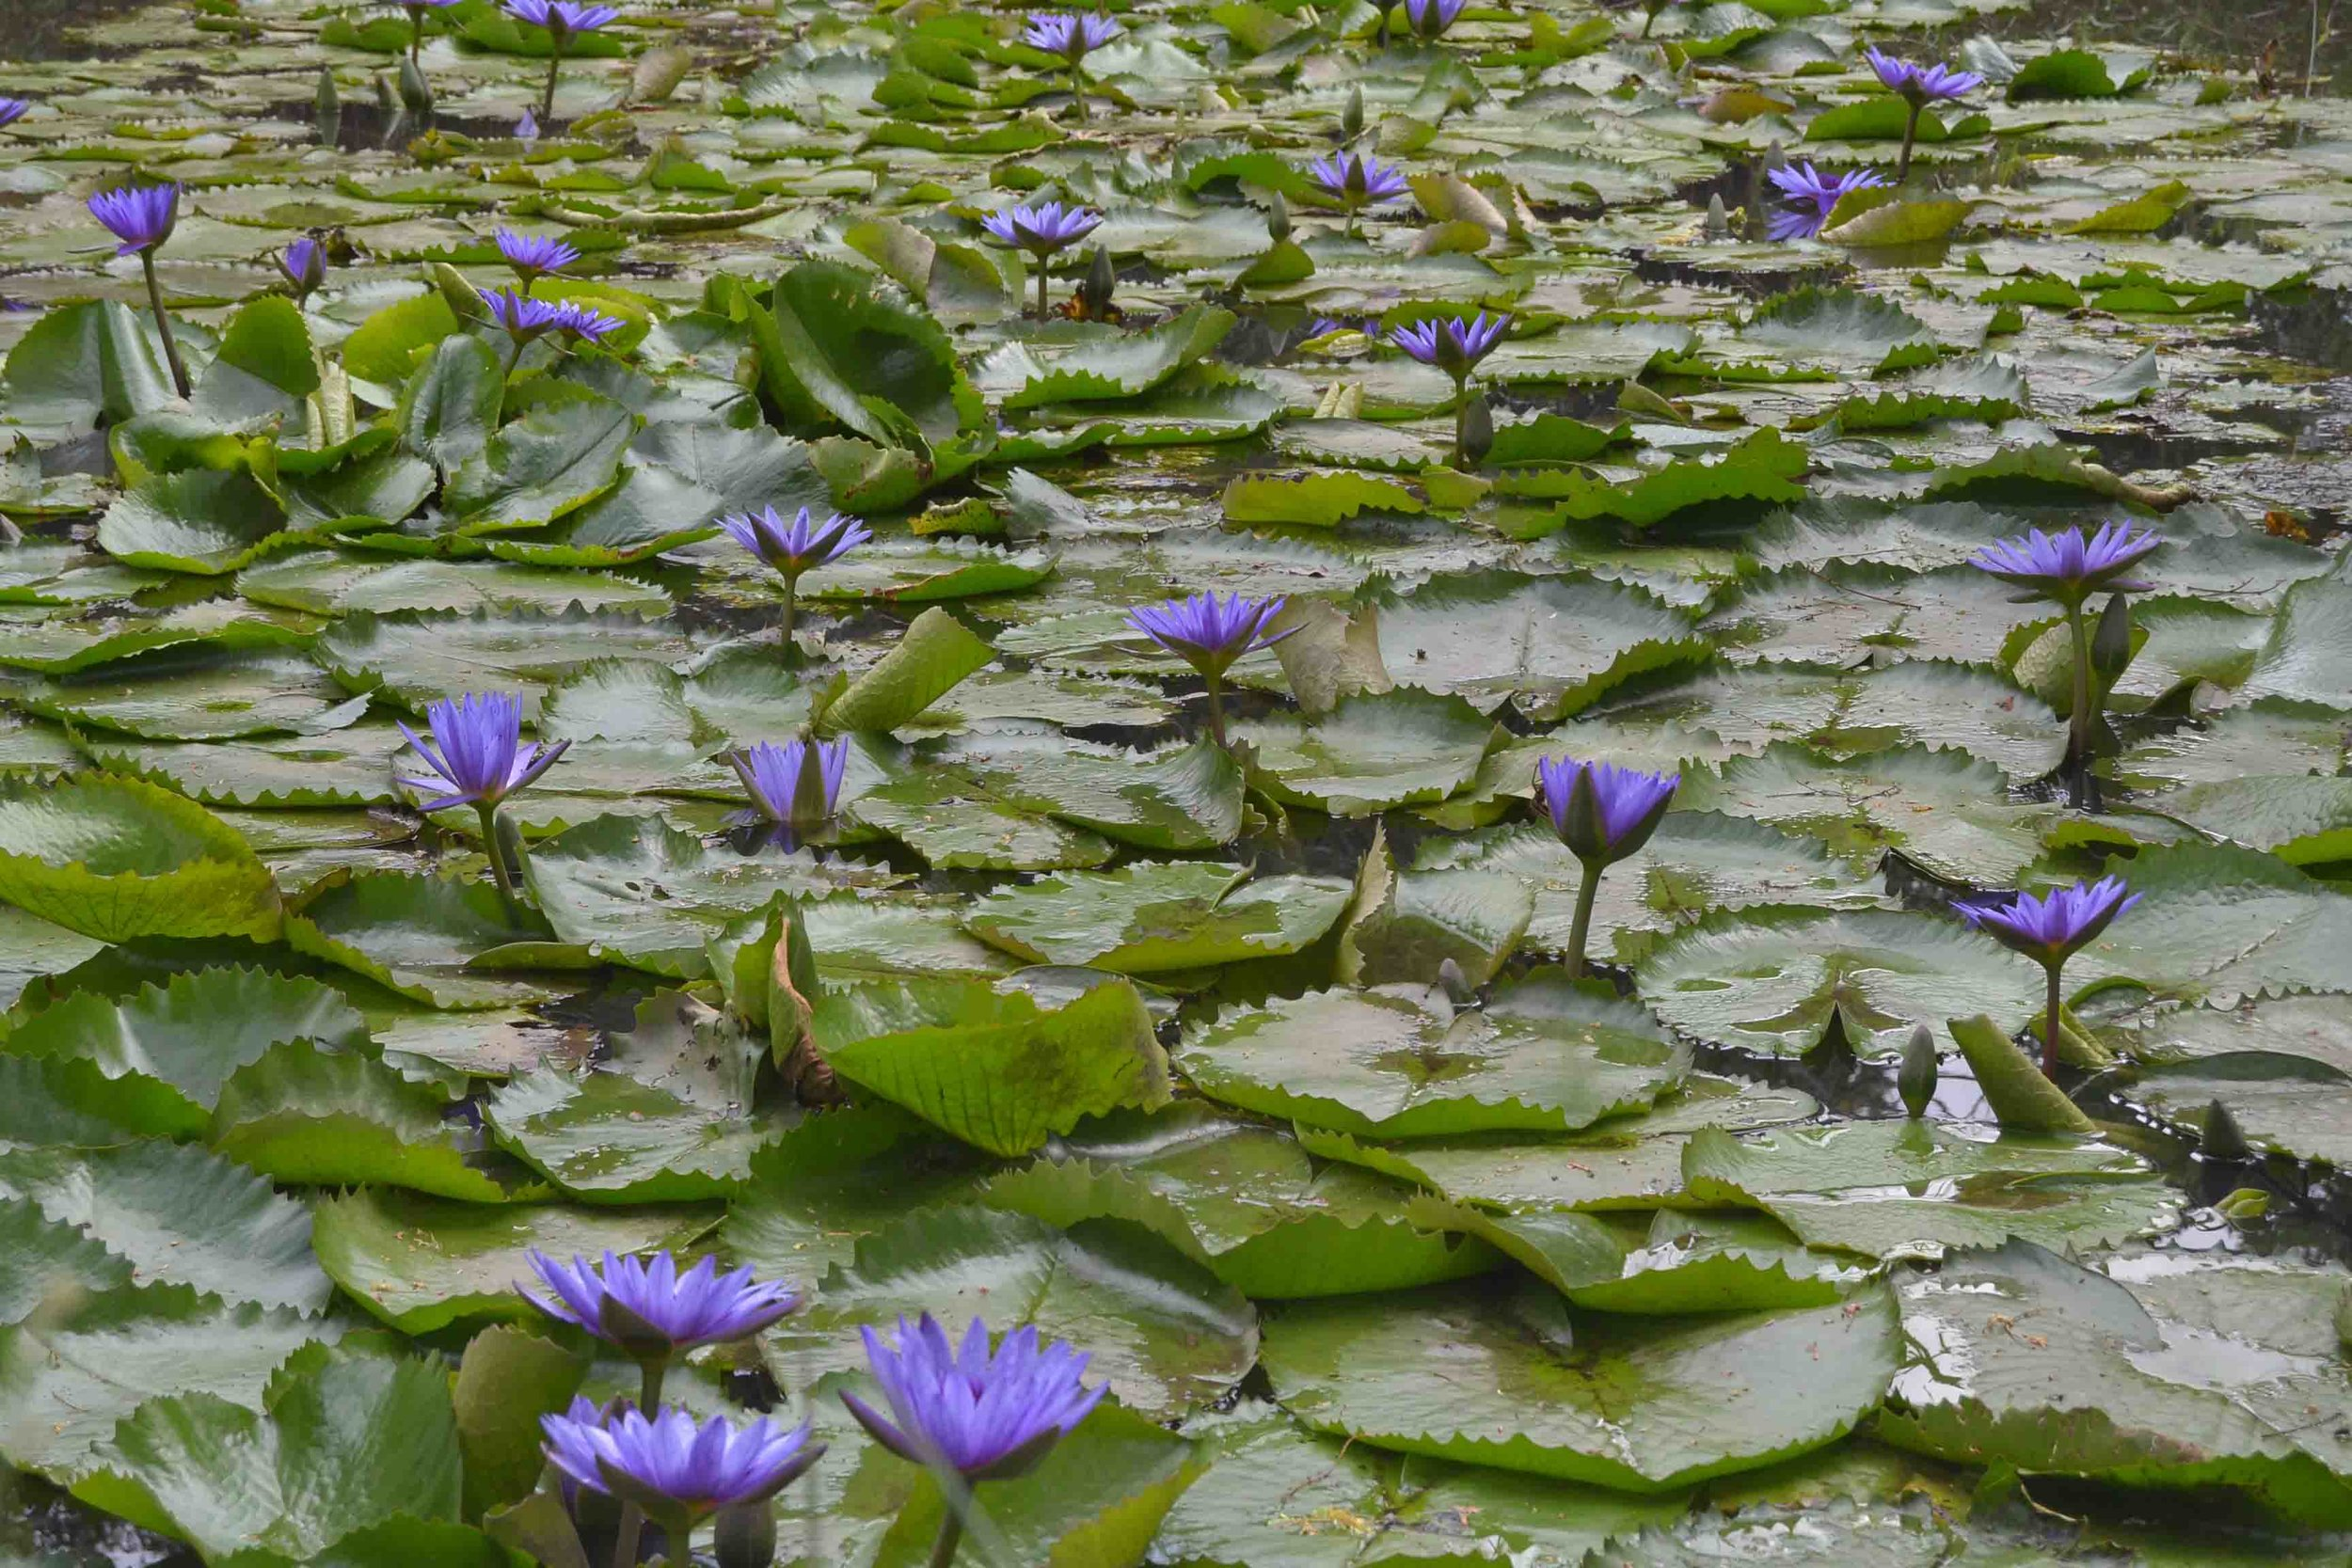 Water Lilies on a Pond at the Lowveld Botanical Gardens